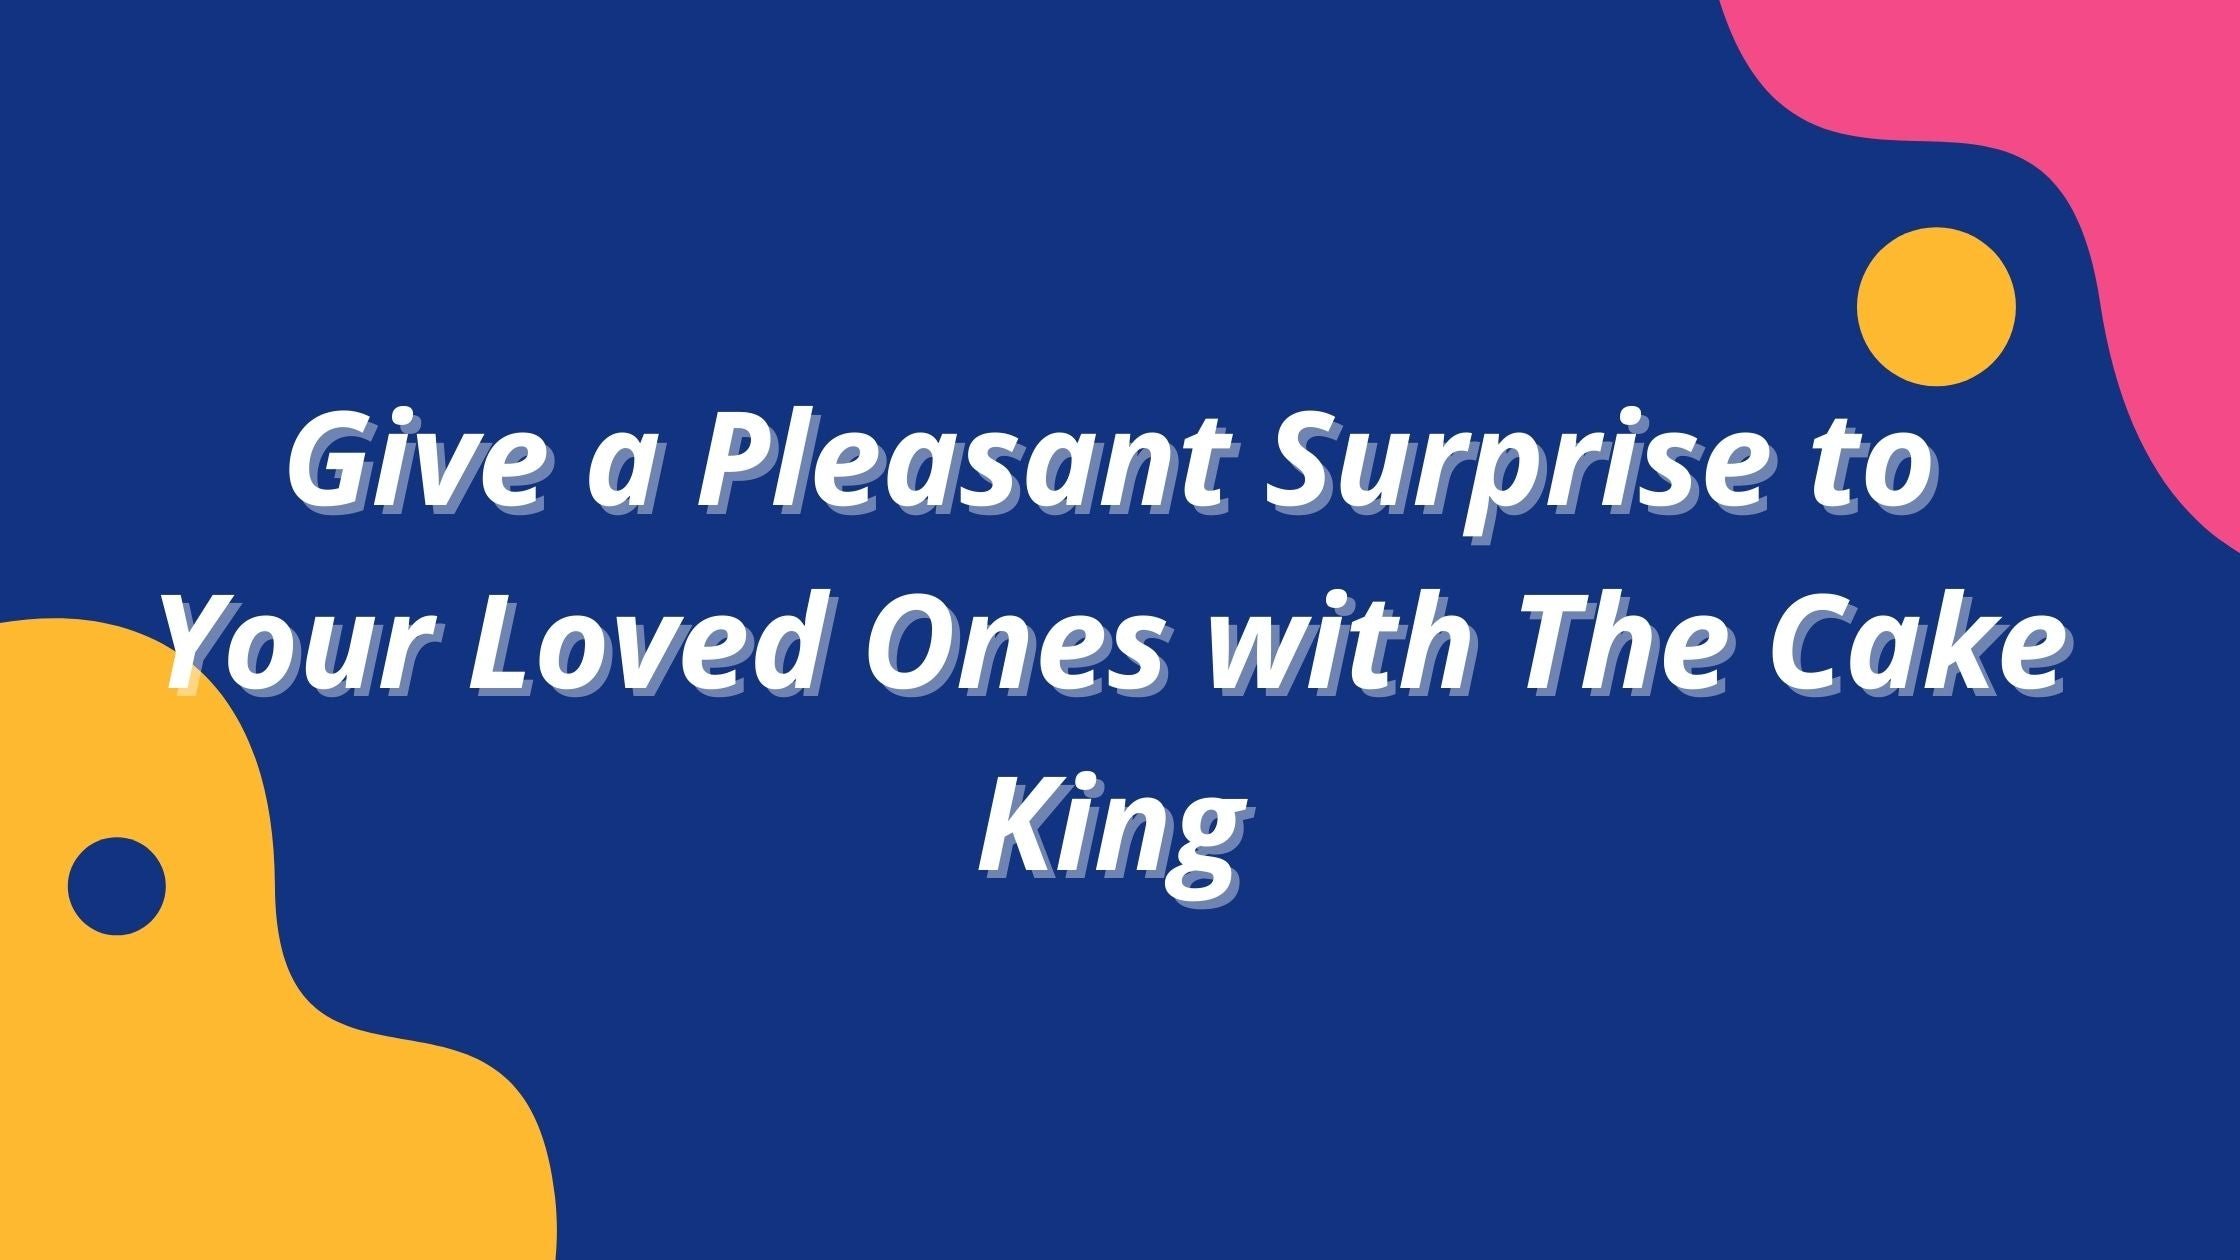 Give a Pleasant Surprise to Your Loved Ones with The Cake King